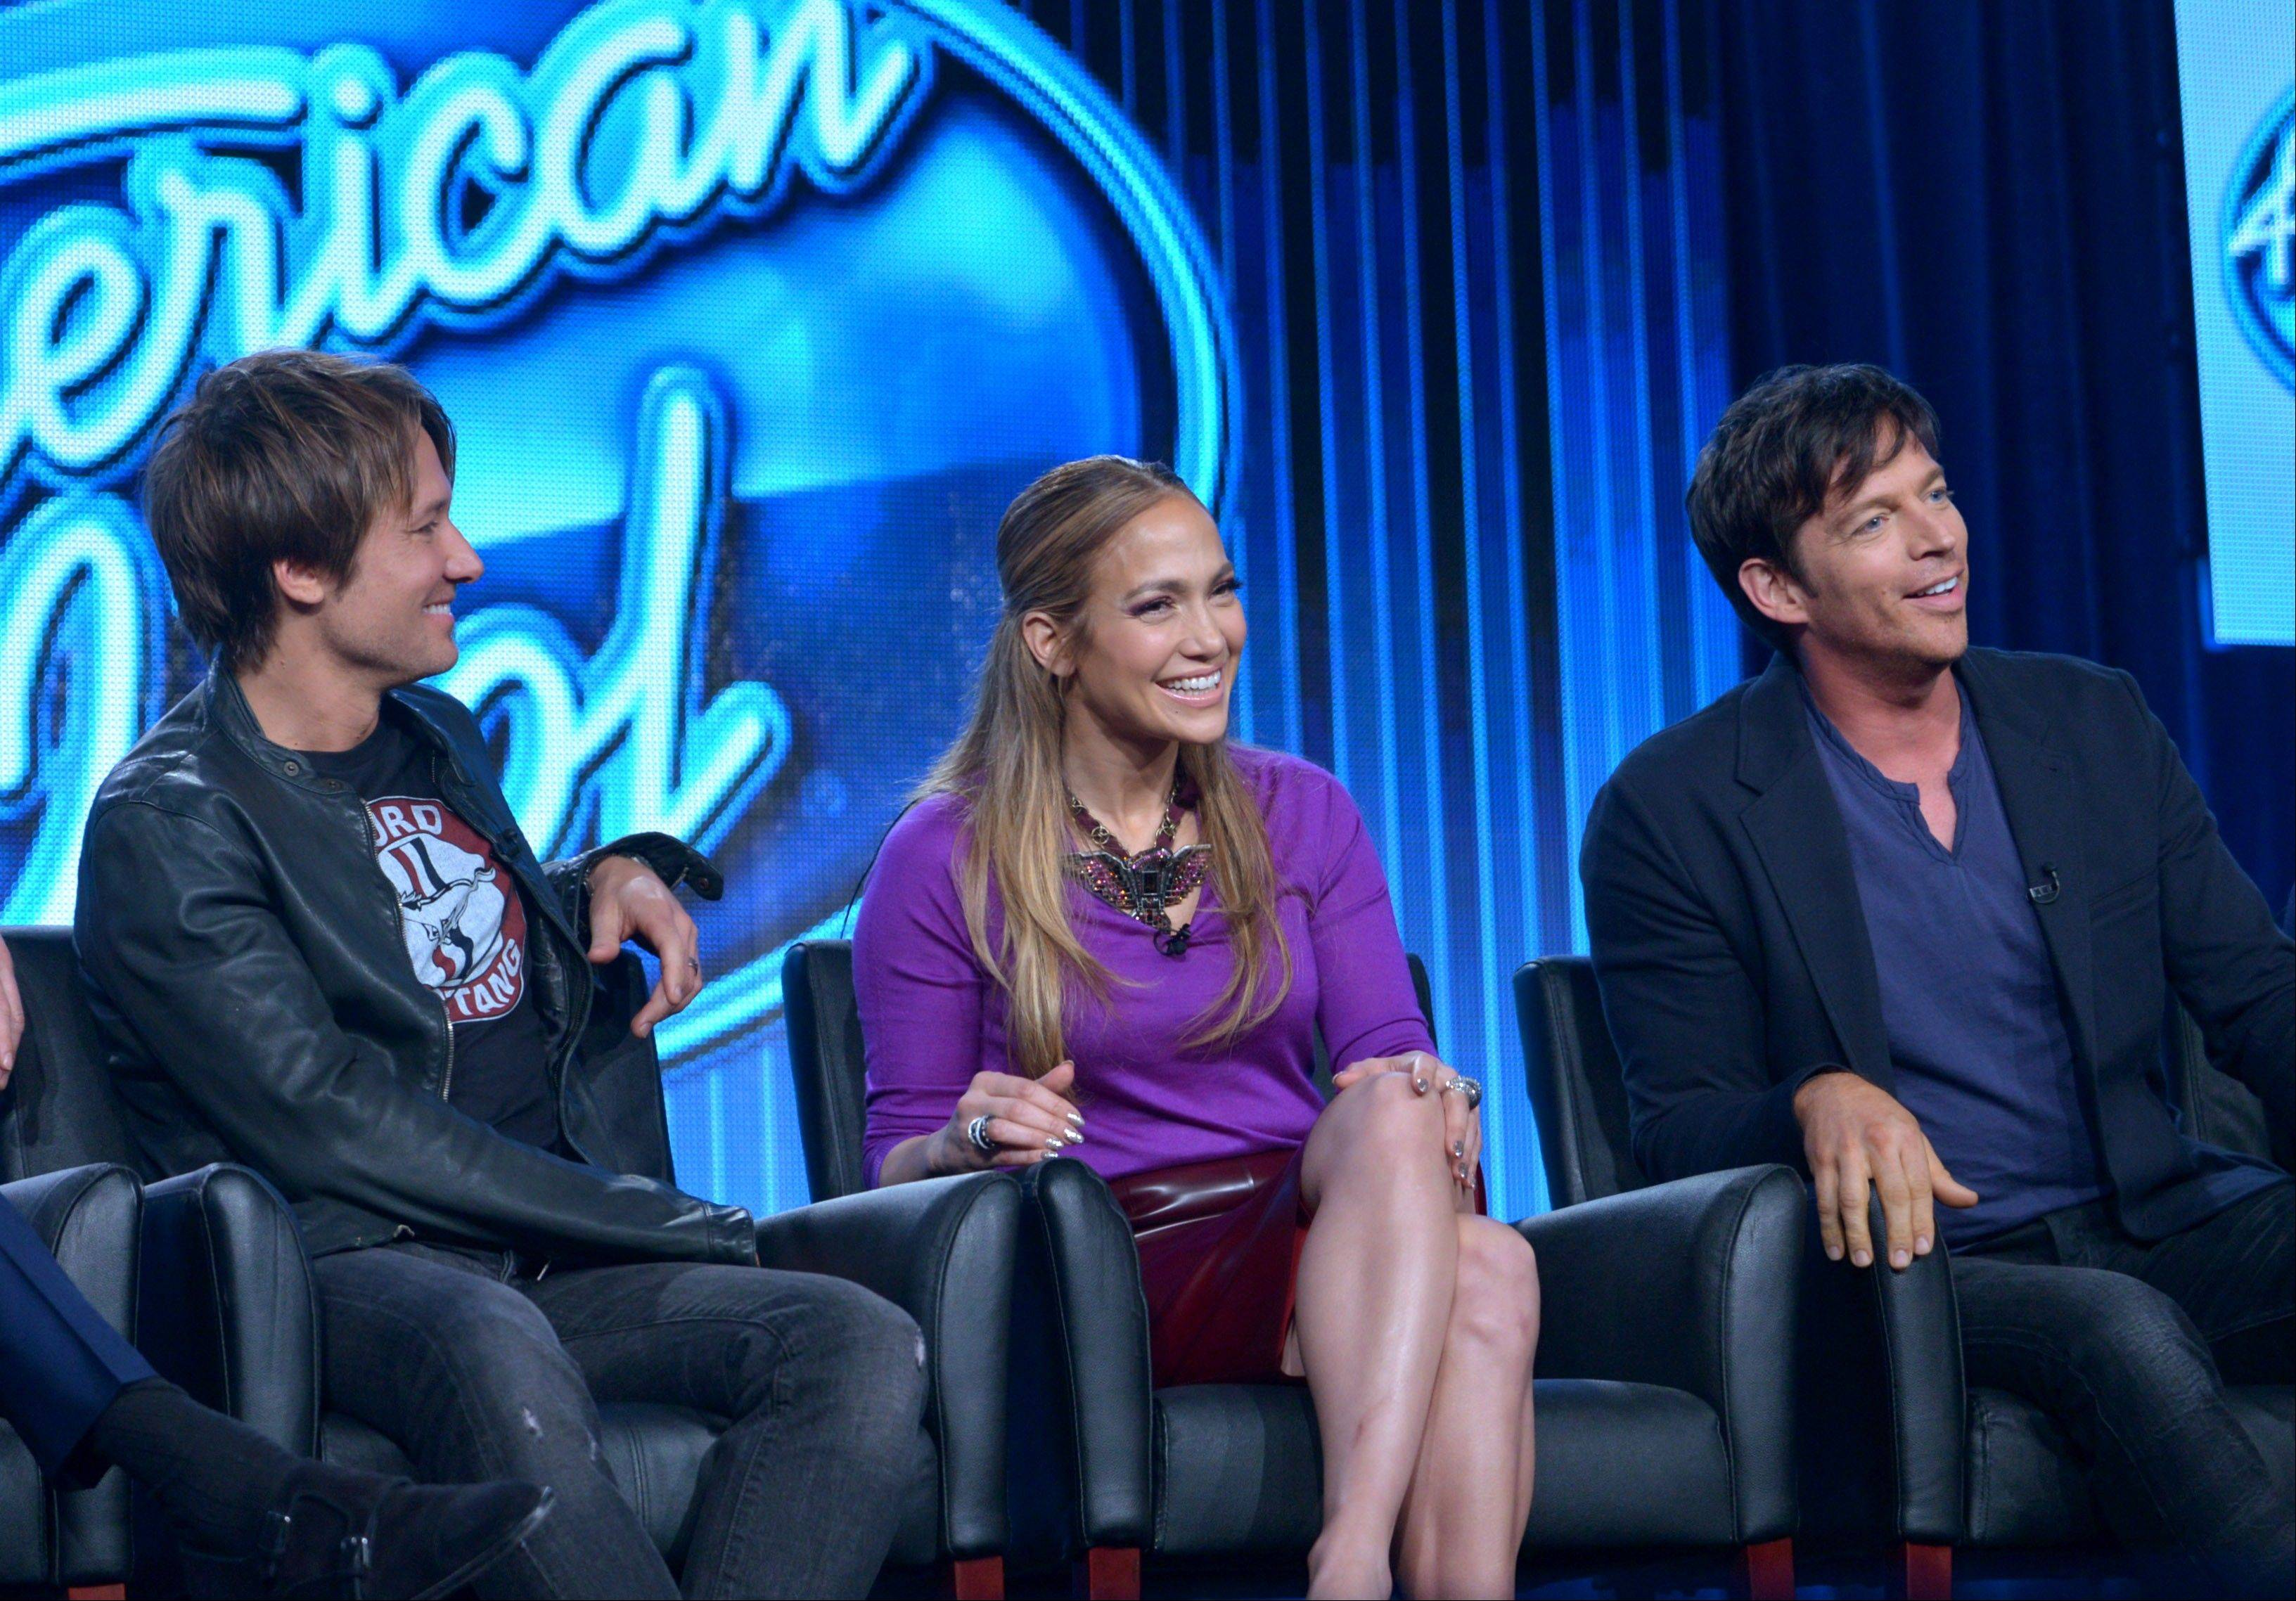 Keith Urban, left, Jennifer Lopez and Harry Connick Jr. preview �American Idol� at the FOX Winter 2014 TCA on Monday. The producers of the show say the new season includes changes to freshen it, including an expanded song list for contestants.